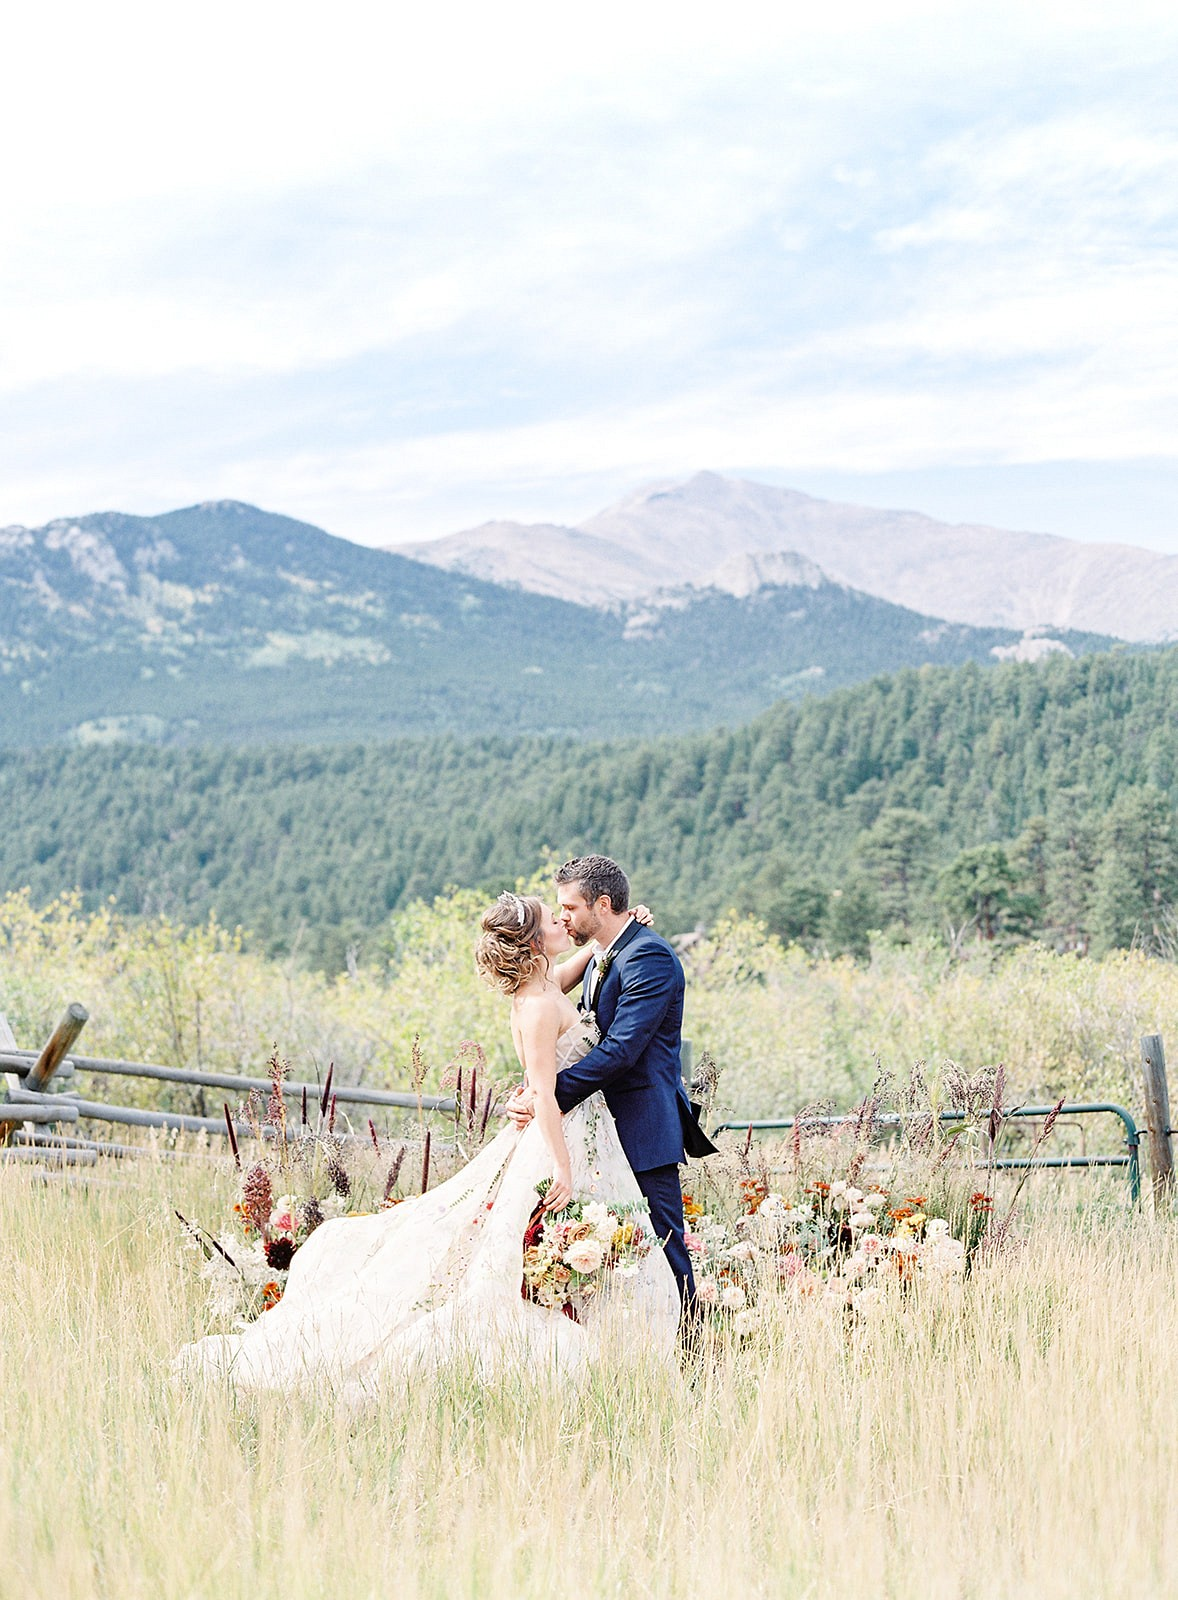 Colorful Wedding Dress in Colorado Mountains